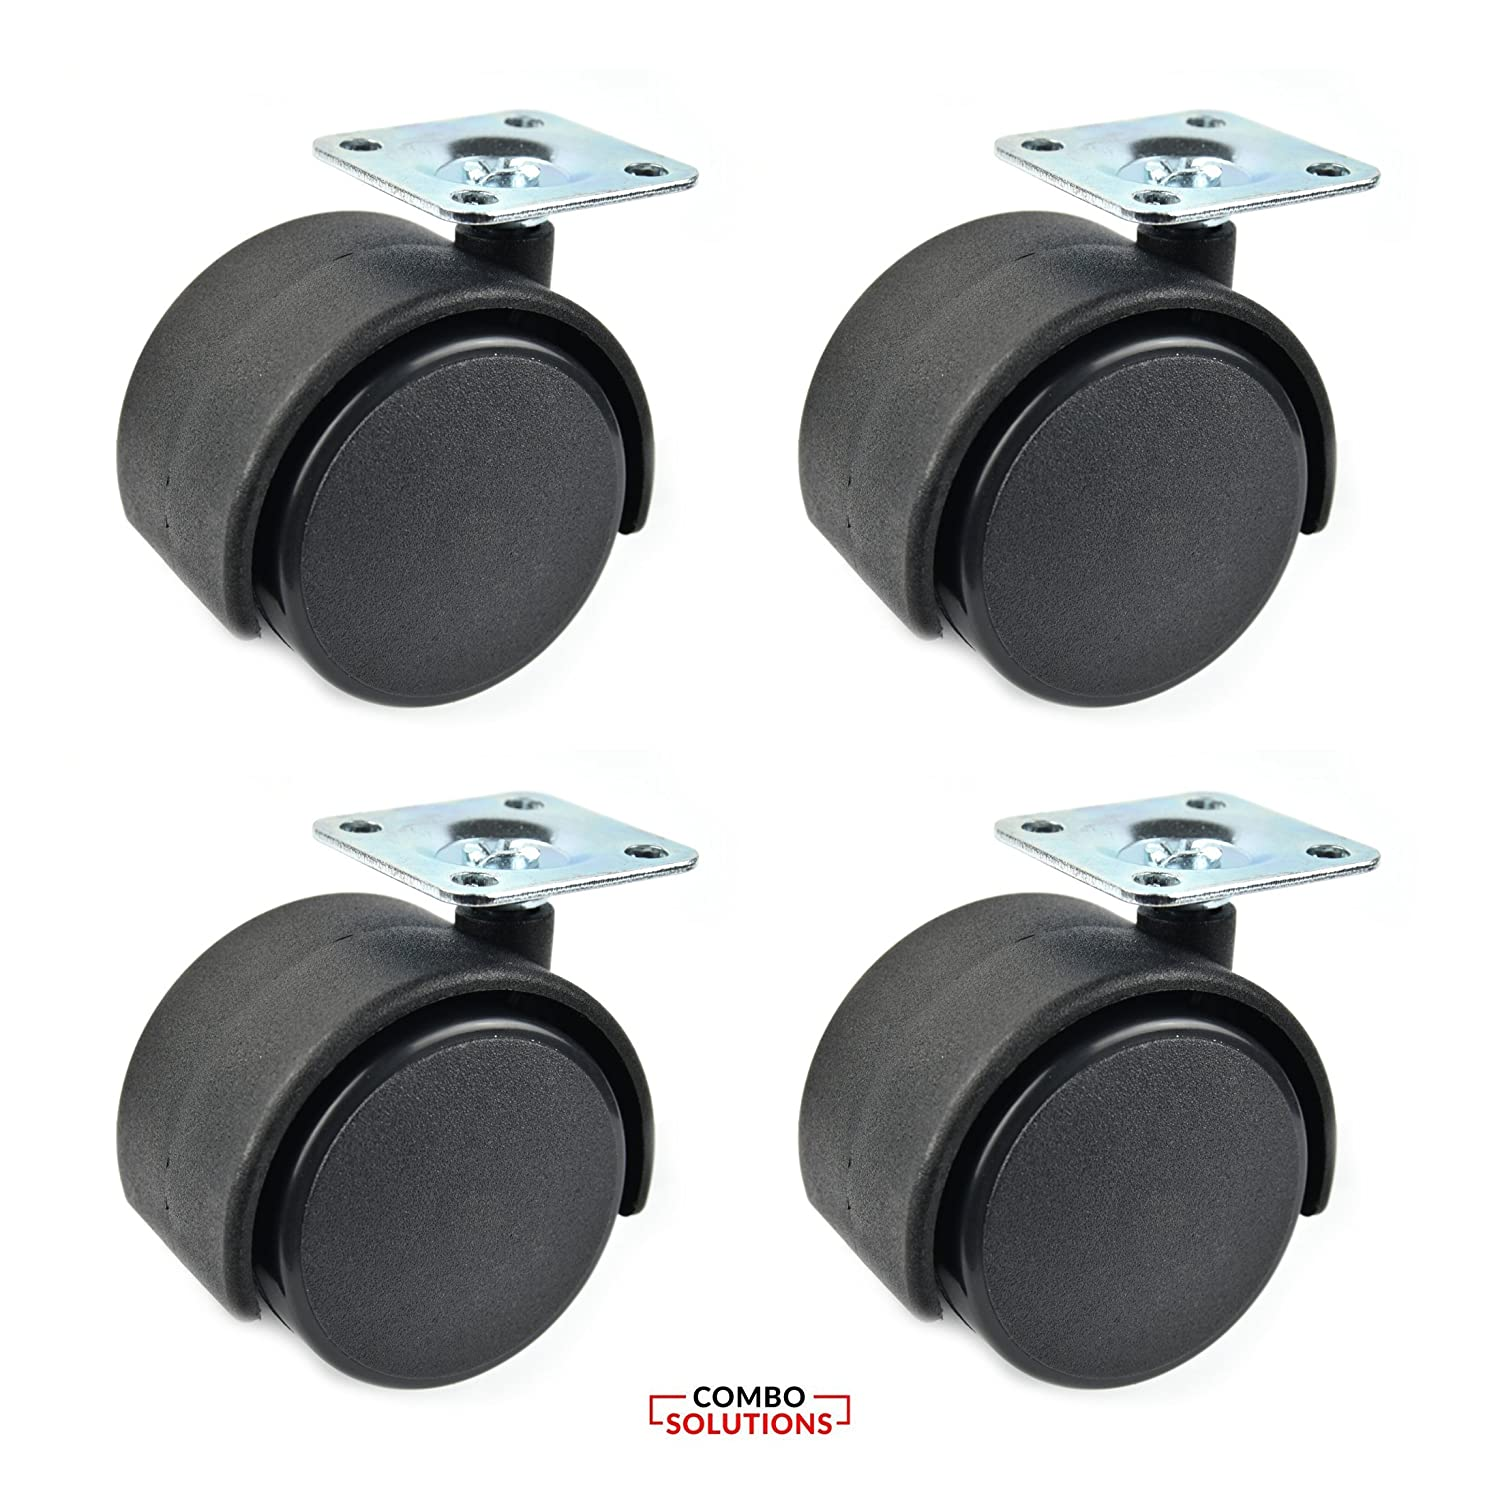 2 Inches Black Nylon Twin Wheel Swivel Plate Caster with 20 Screw - Set of 4